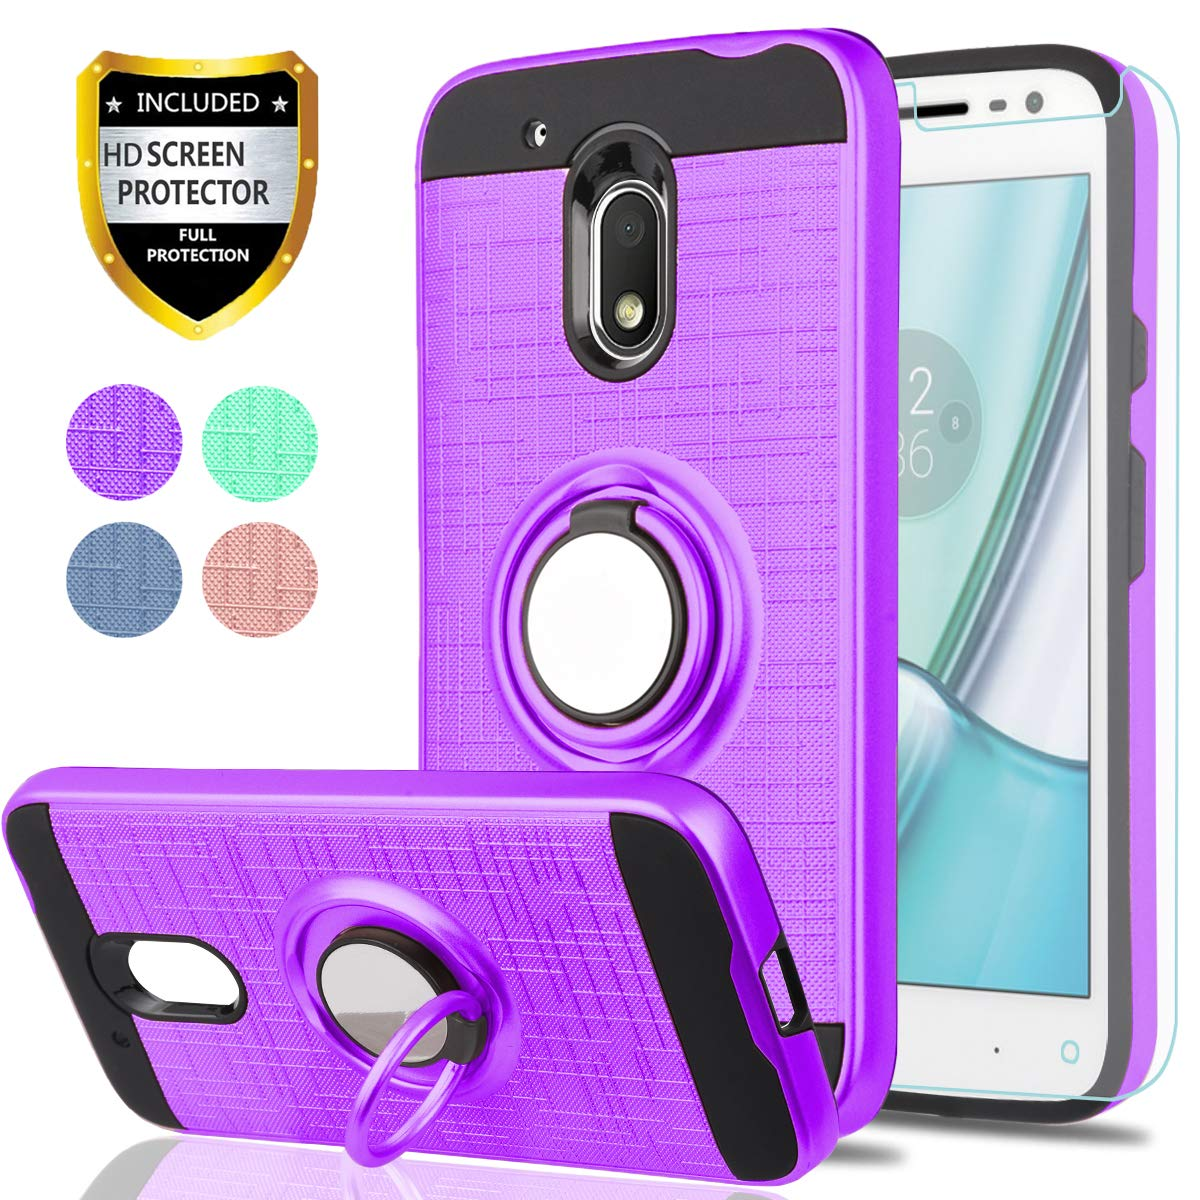 Amazon.com: Moto G4 Play Case, Moto G Play 4ta generación ...